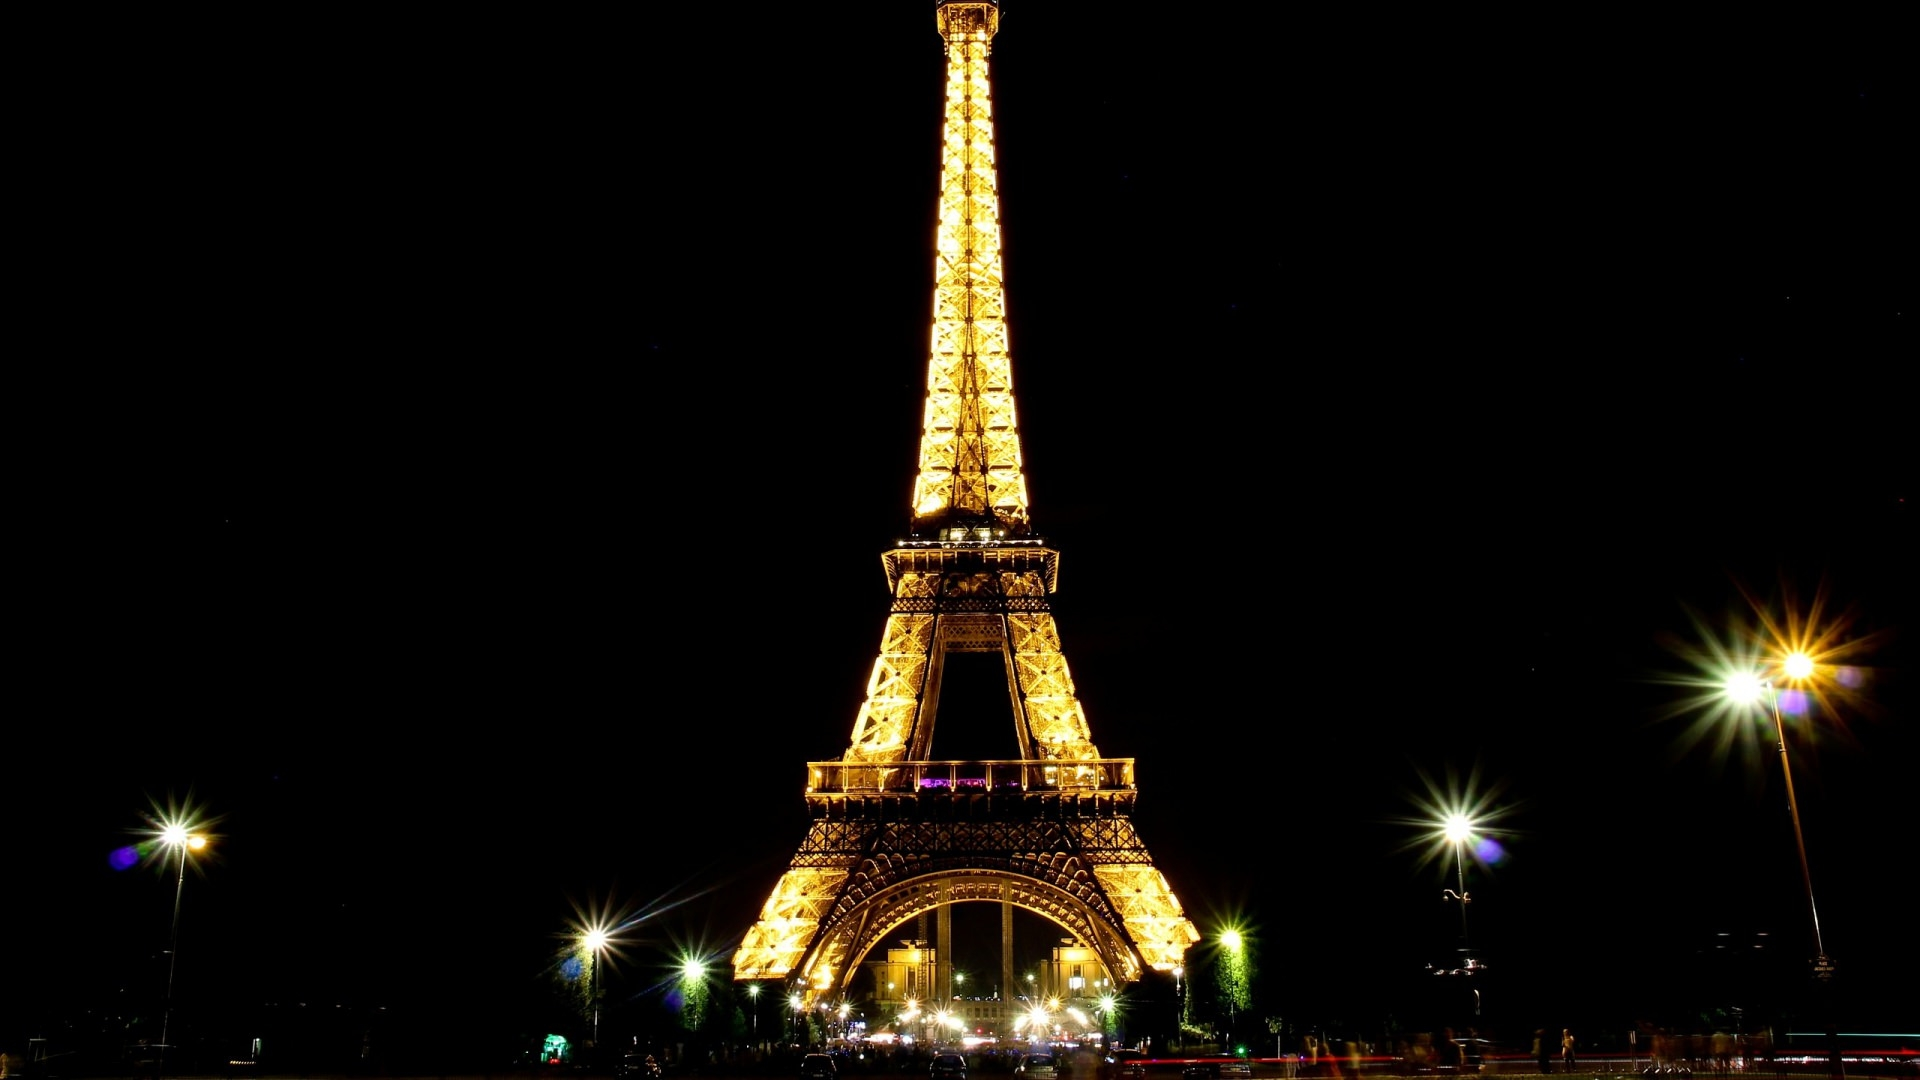 Eiffel Tower with Lights Background